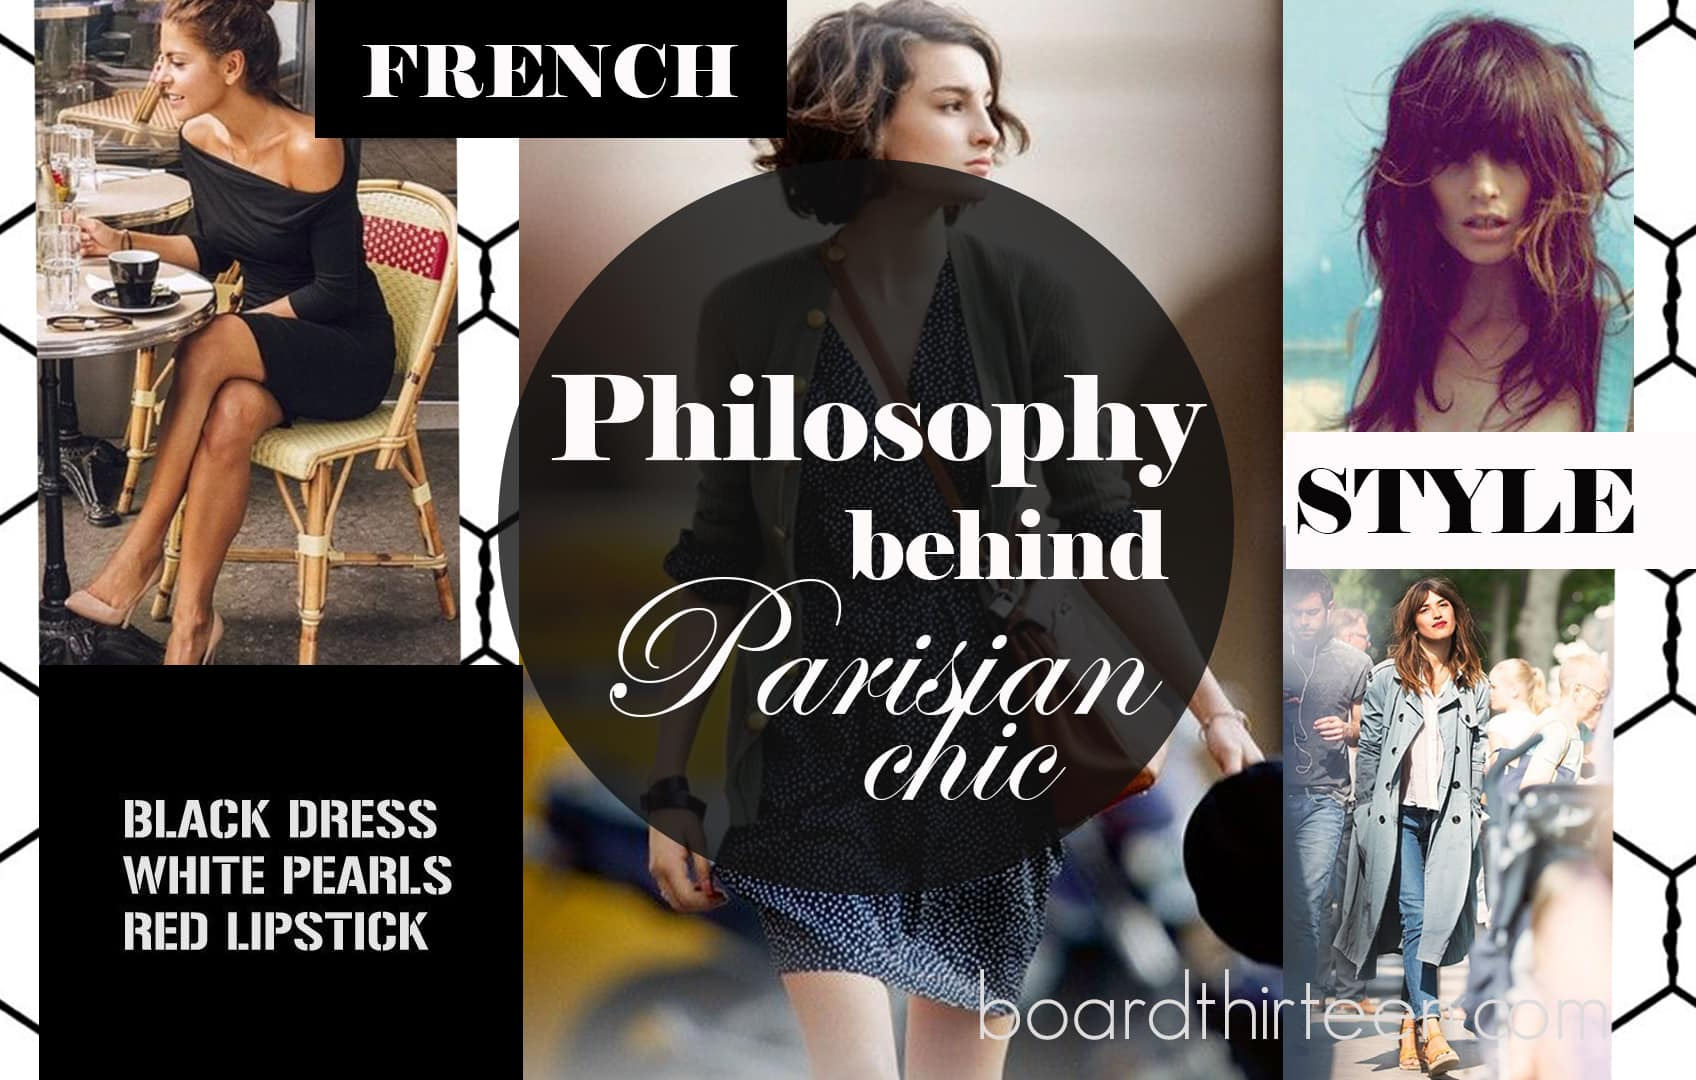 Idea and philosophy behind the Parisian chic.